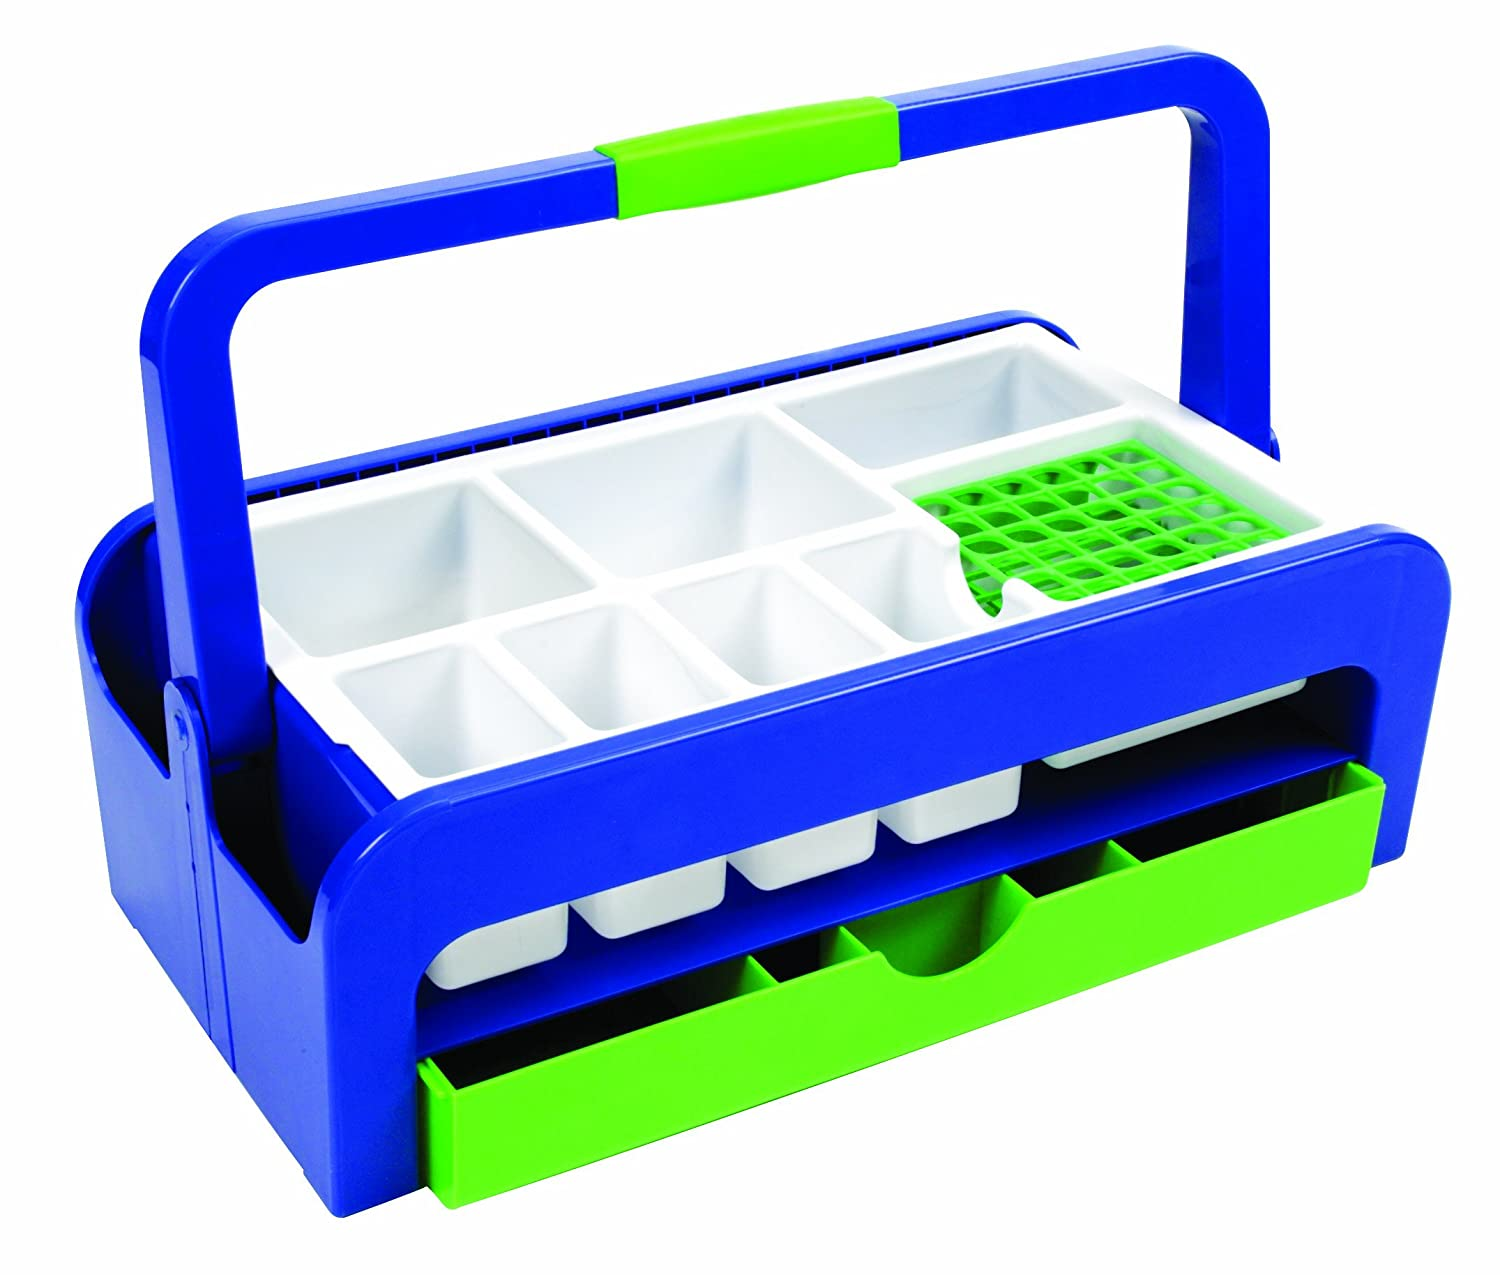 Heathrow Scientific HD2200A ABS Multipurpose Utility Tray with Two Inserts Style A, 429 mm Length x 265 mm Width x 172 mm Height, Blue/Green